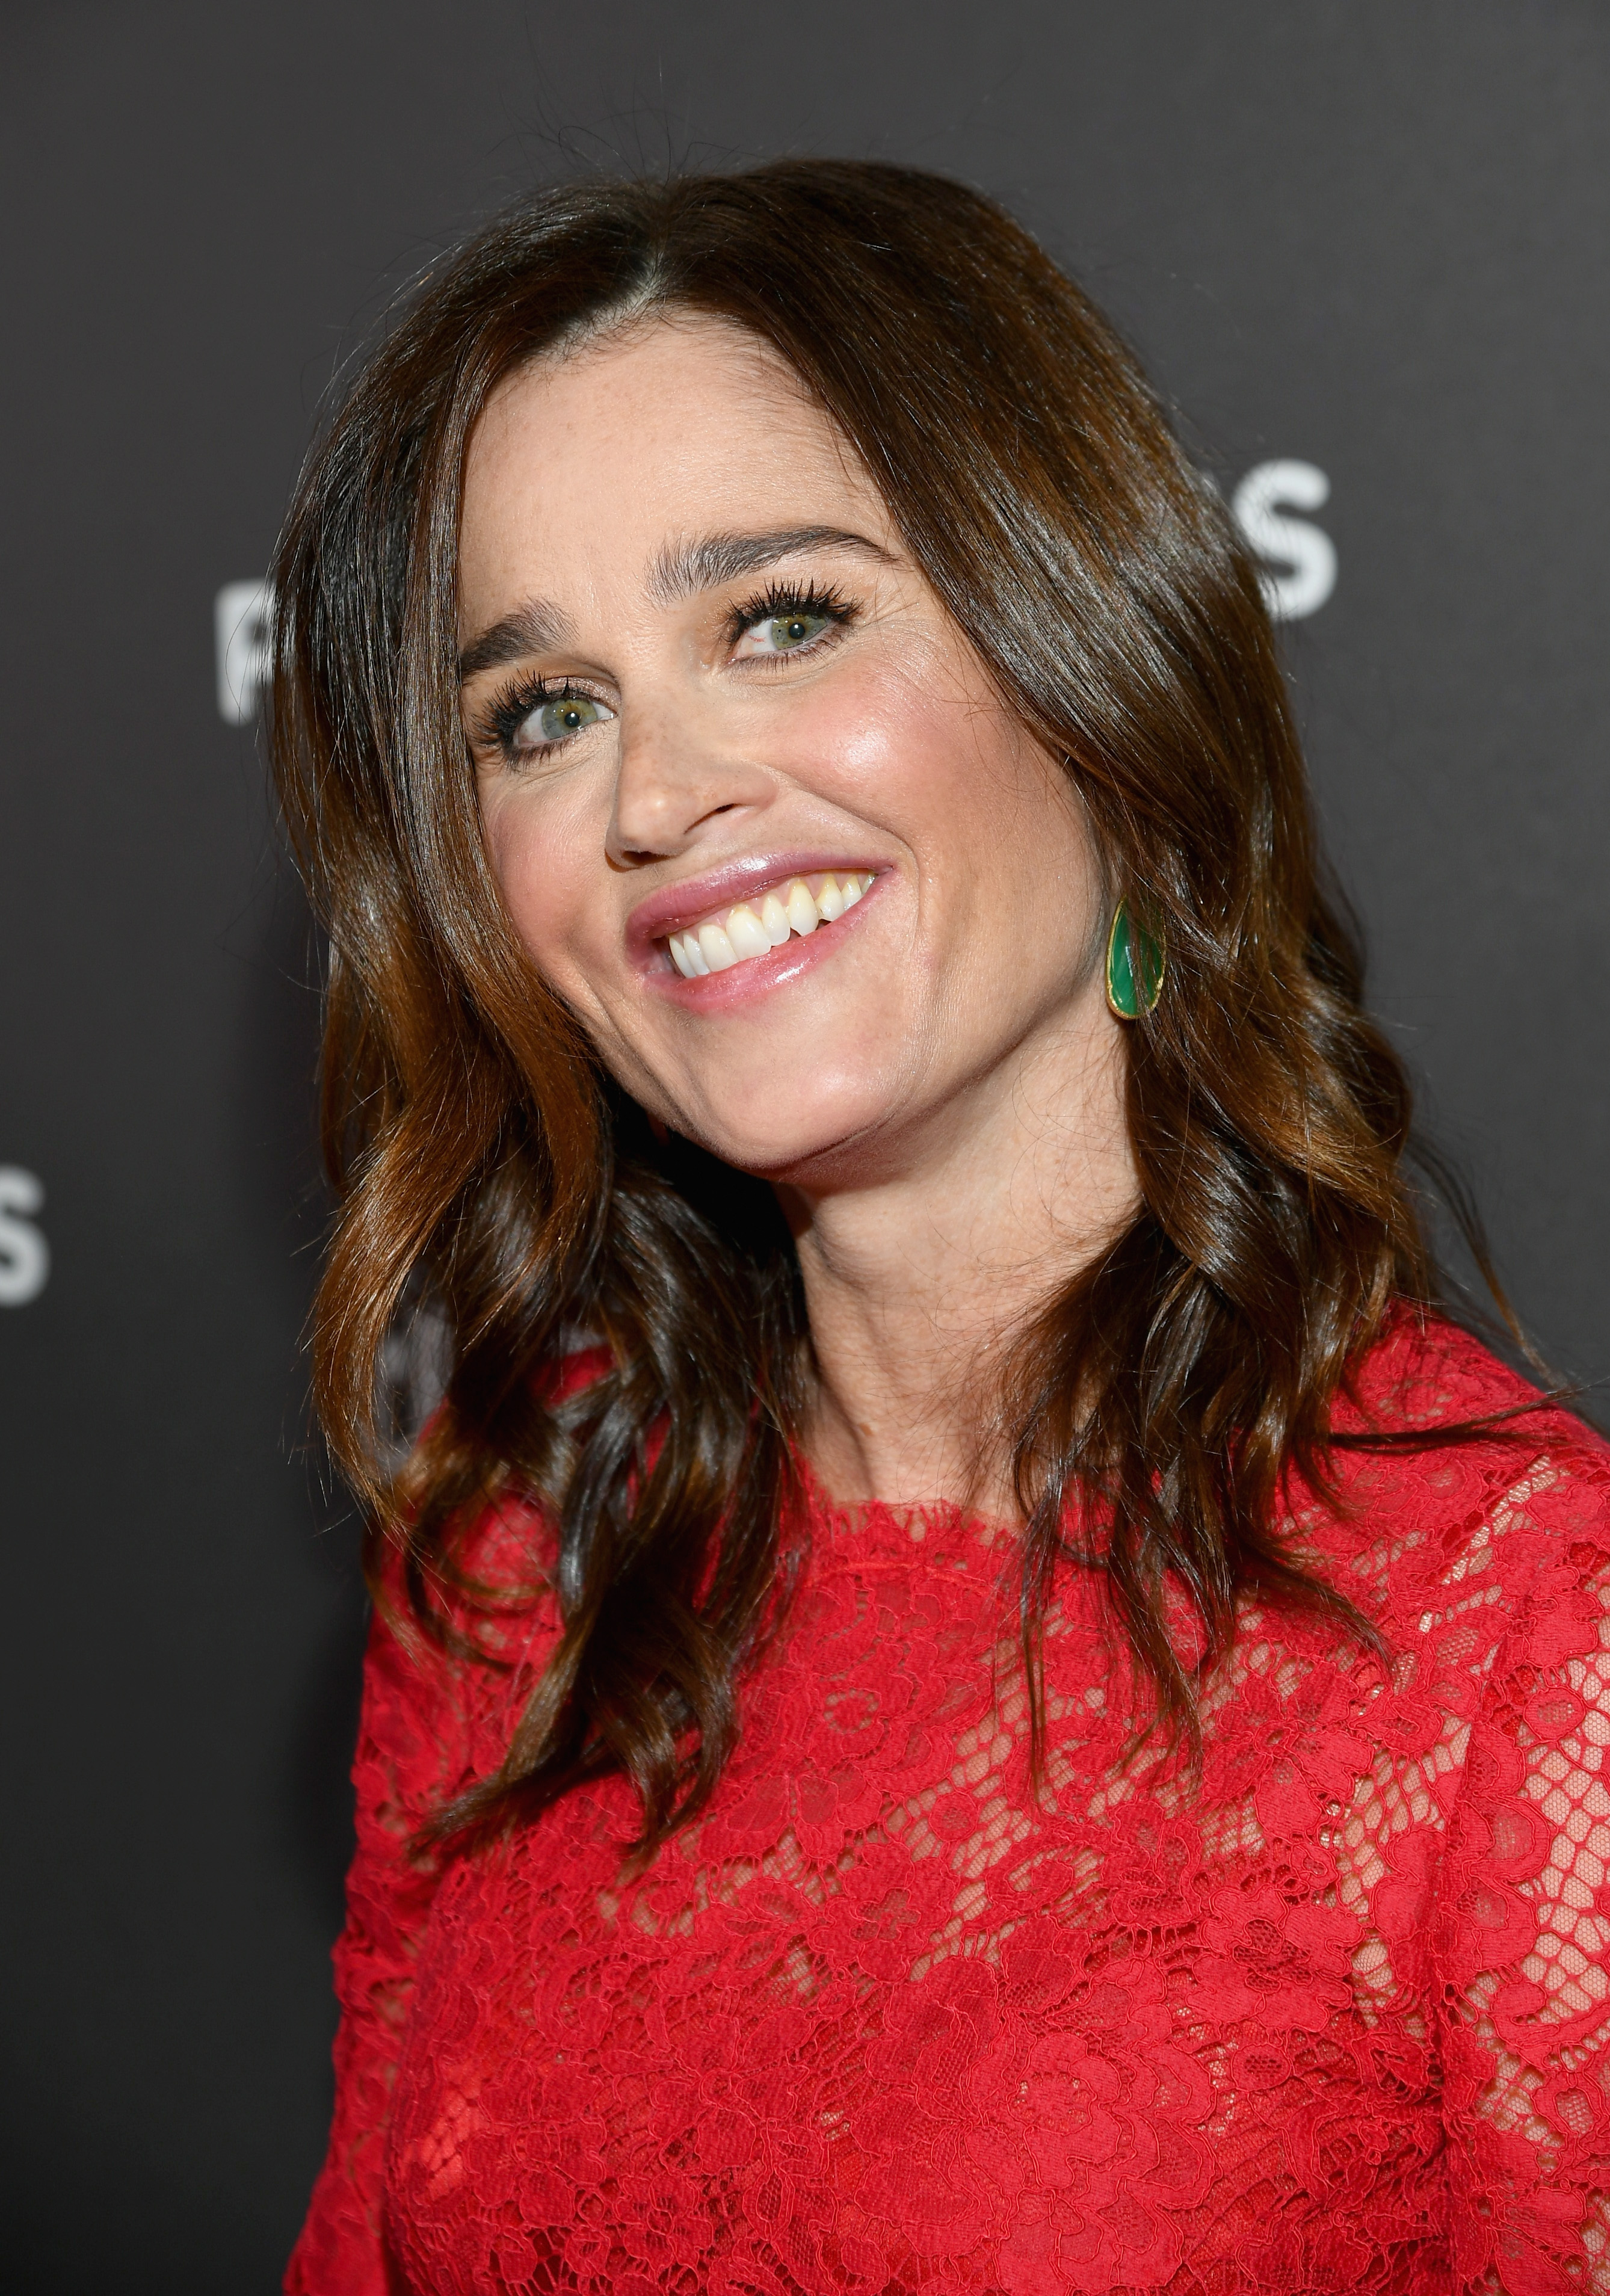 Robin Tunney attends Entertainment Weekly Celebrates Screen Actors Guild Award Nominees sponsored by L'Oreal Paris, Cadillac, And PopSockets at Chateau Marmont on January 26, 2019, in Los Angeles, California. (Getty Images)